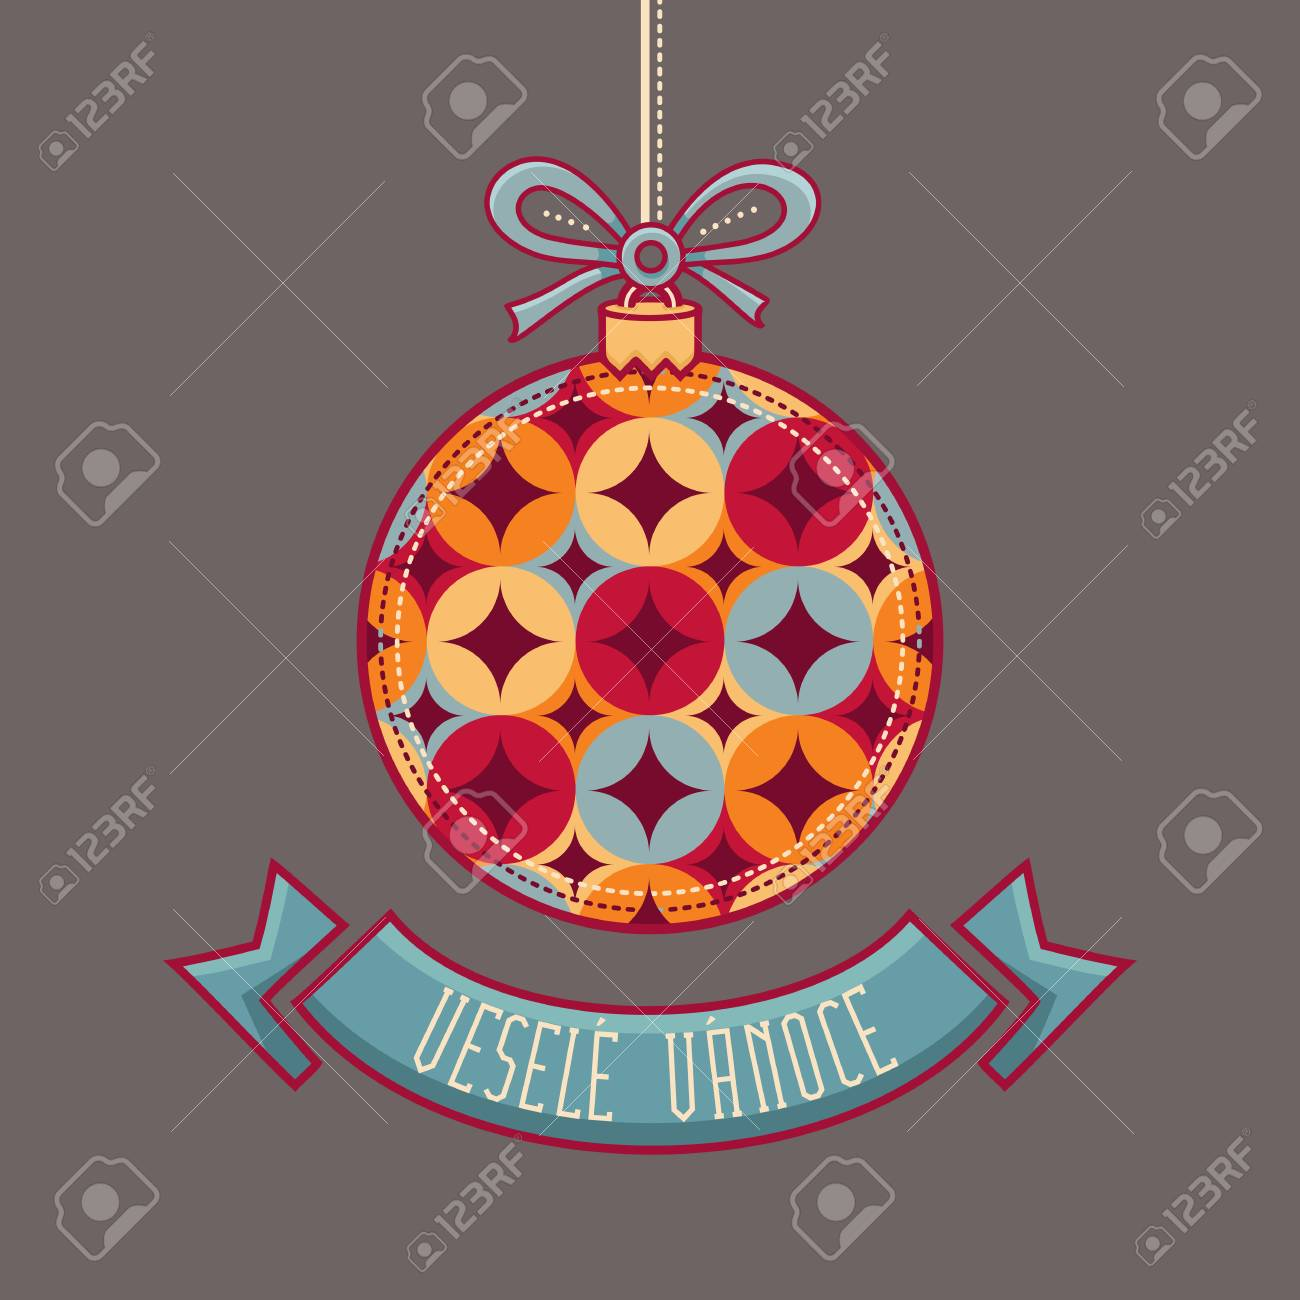 Vesele vanoce christmas message lettering composition with phrase christmas message lettering composition with phrase on czech language warm wishes for happy holidays best for greeting card promotion m4hsunfo